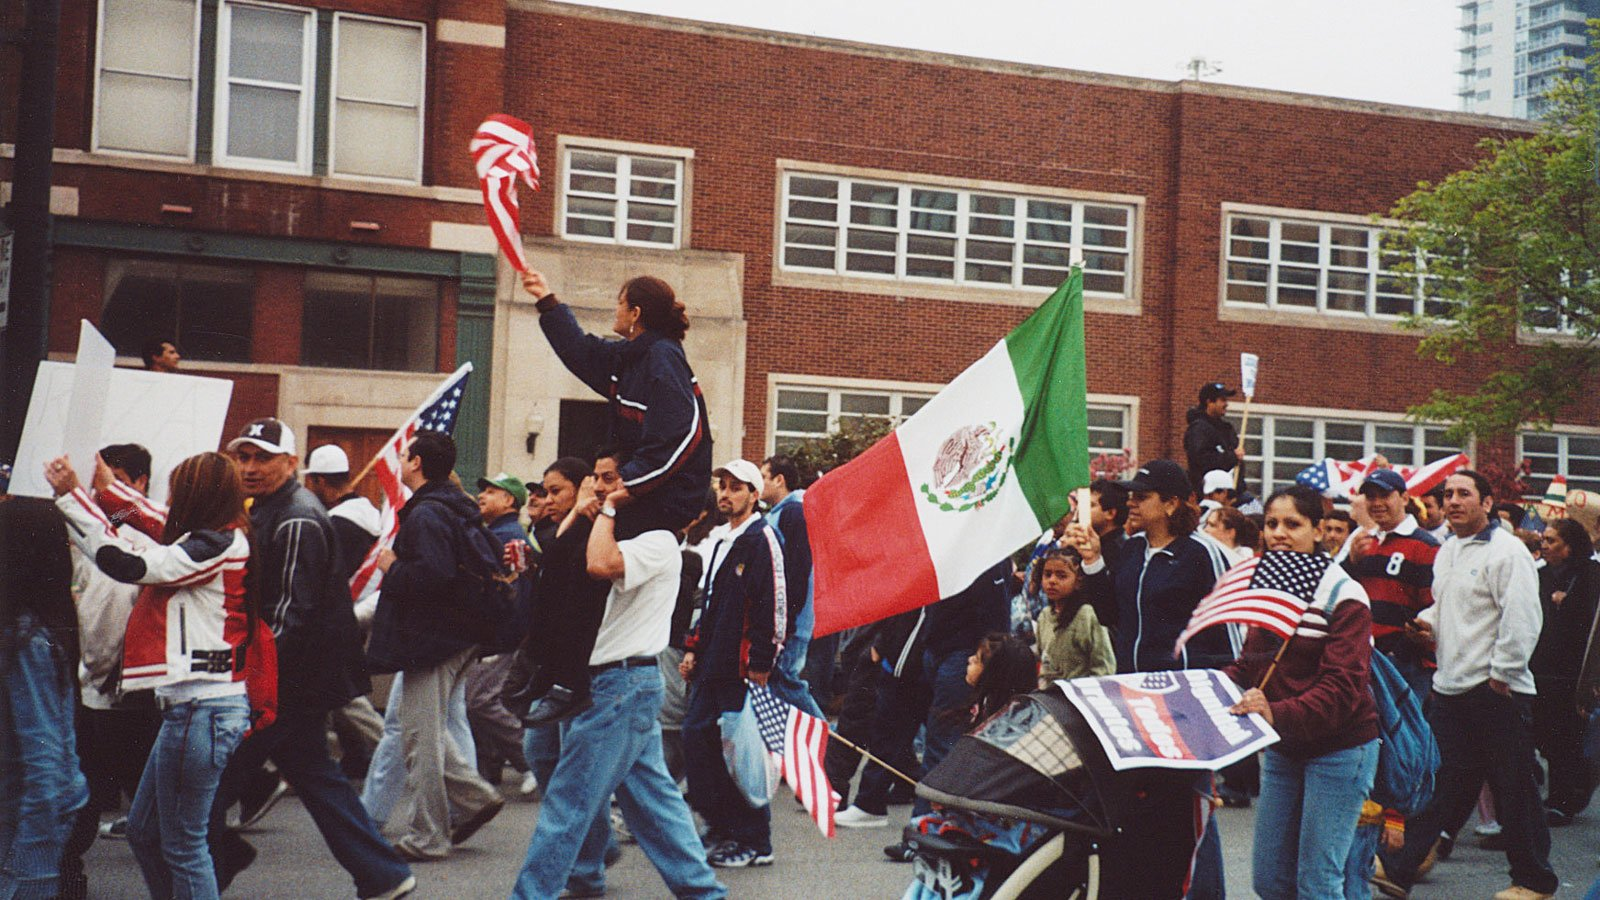 Participants at a May Day Parade, 2006. Courtesy of Roosevelt University's Archives